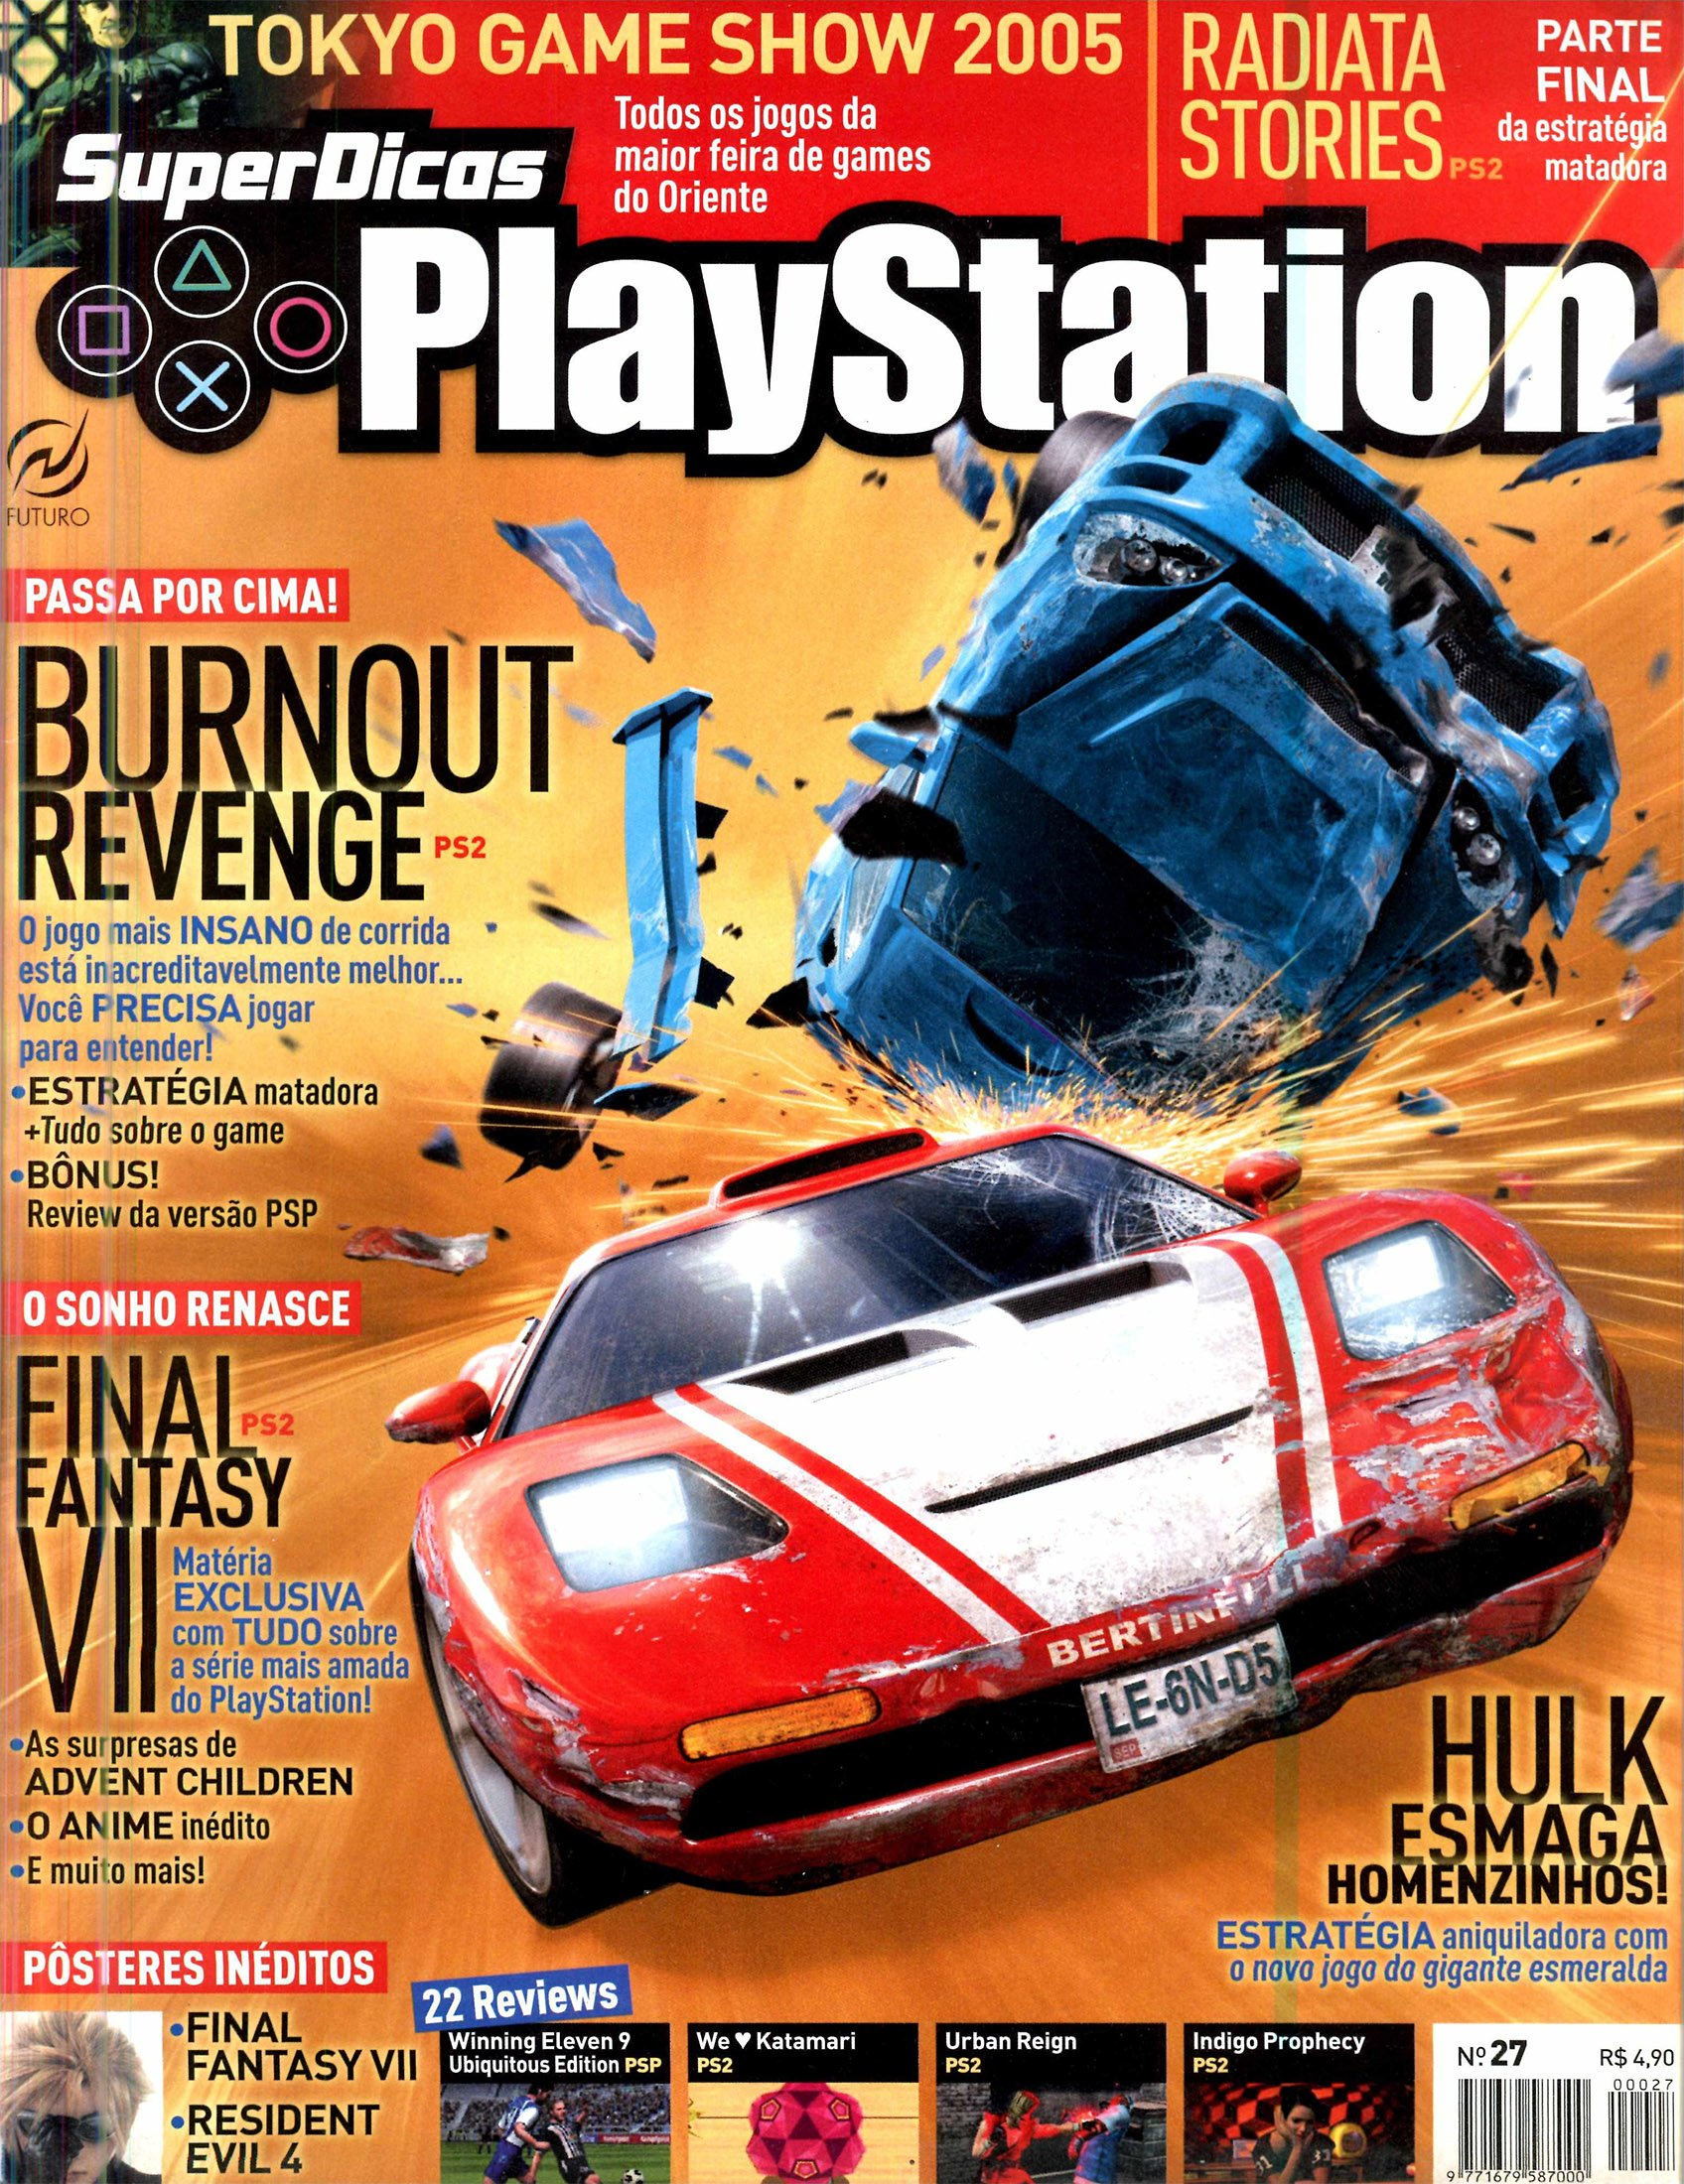 Super Dicas Playstation 27 (November 2005)